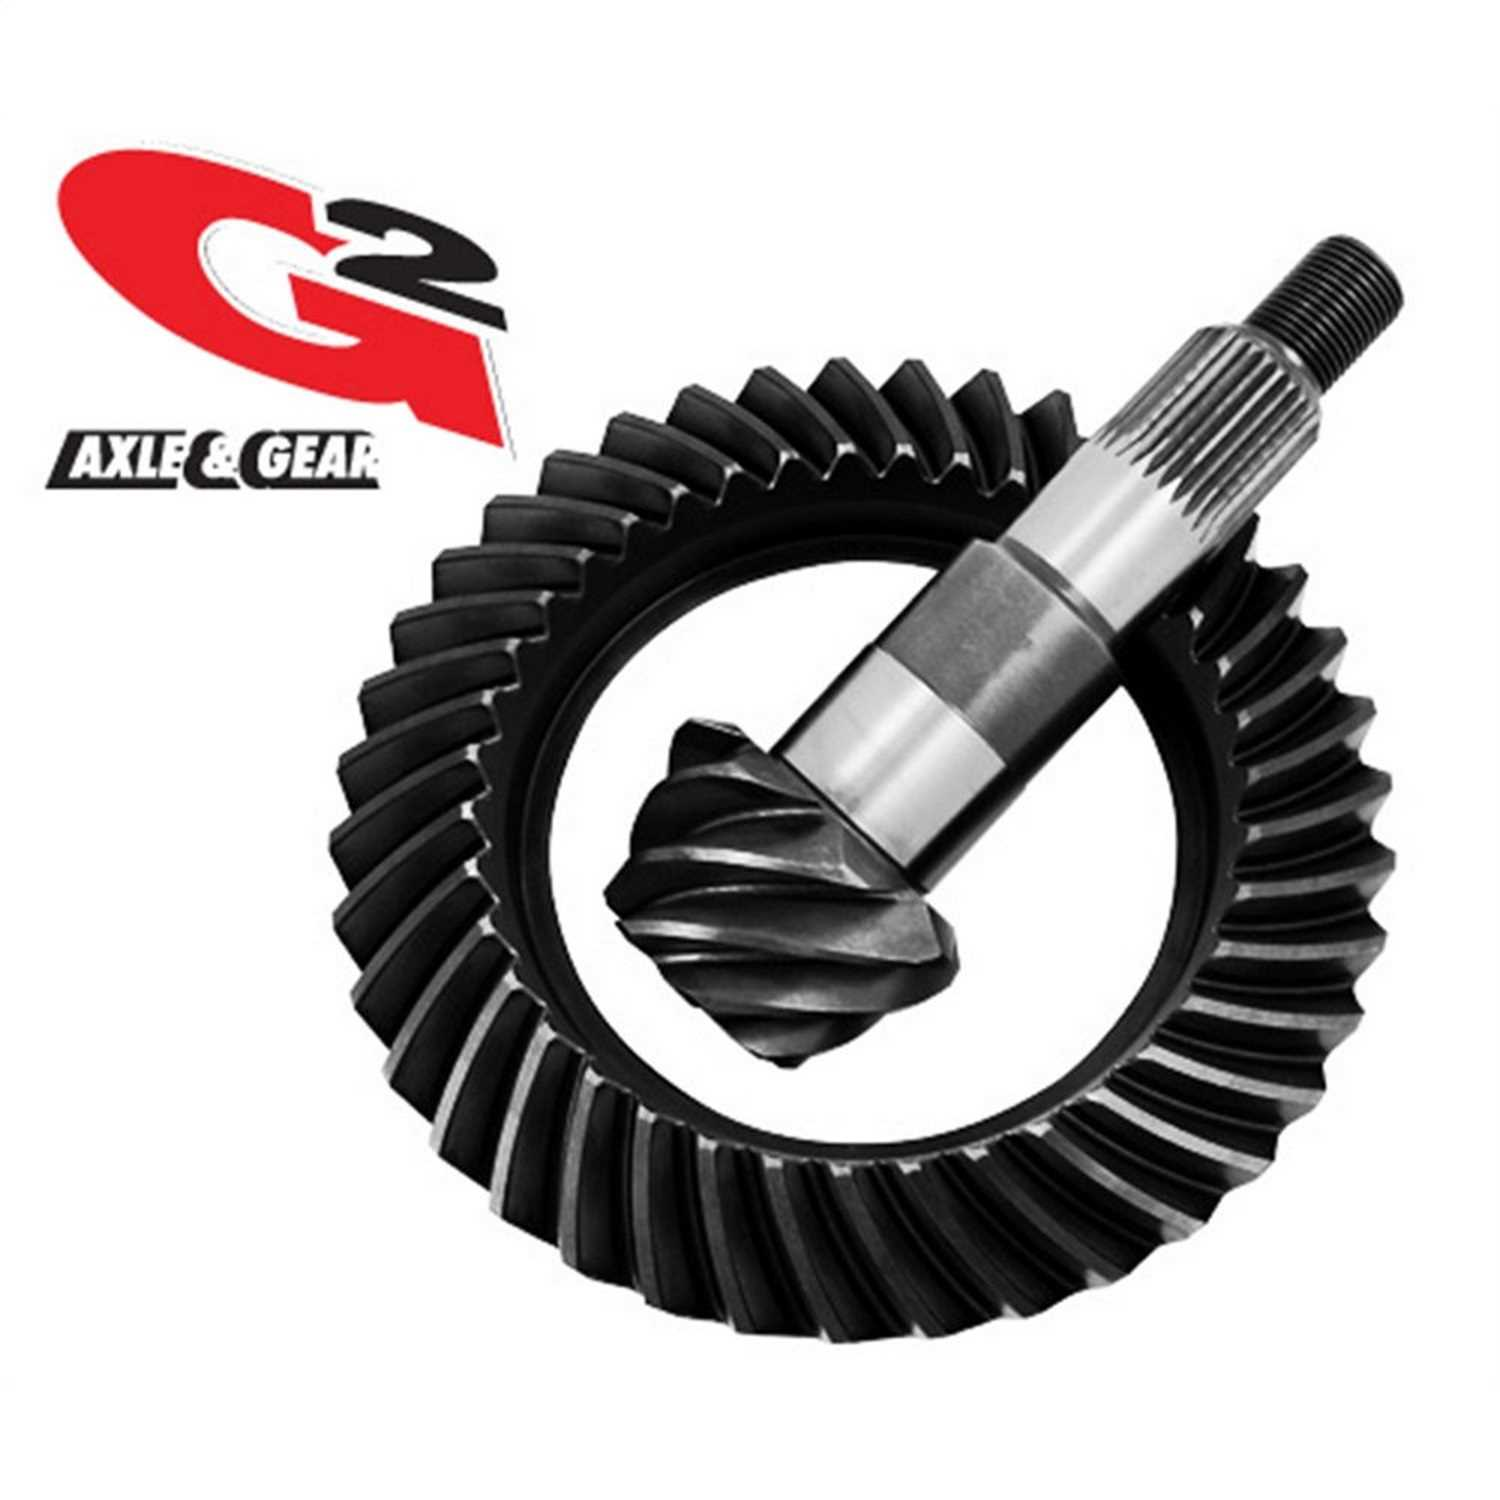 1-2094-342 G2 Axle and Gear Ring and Pinion Set